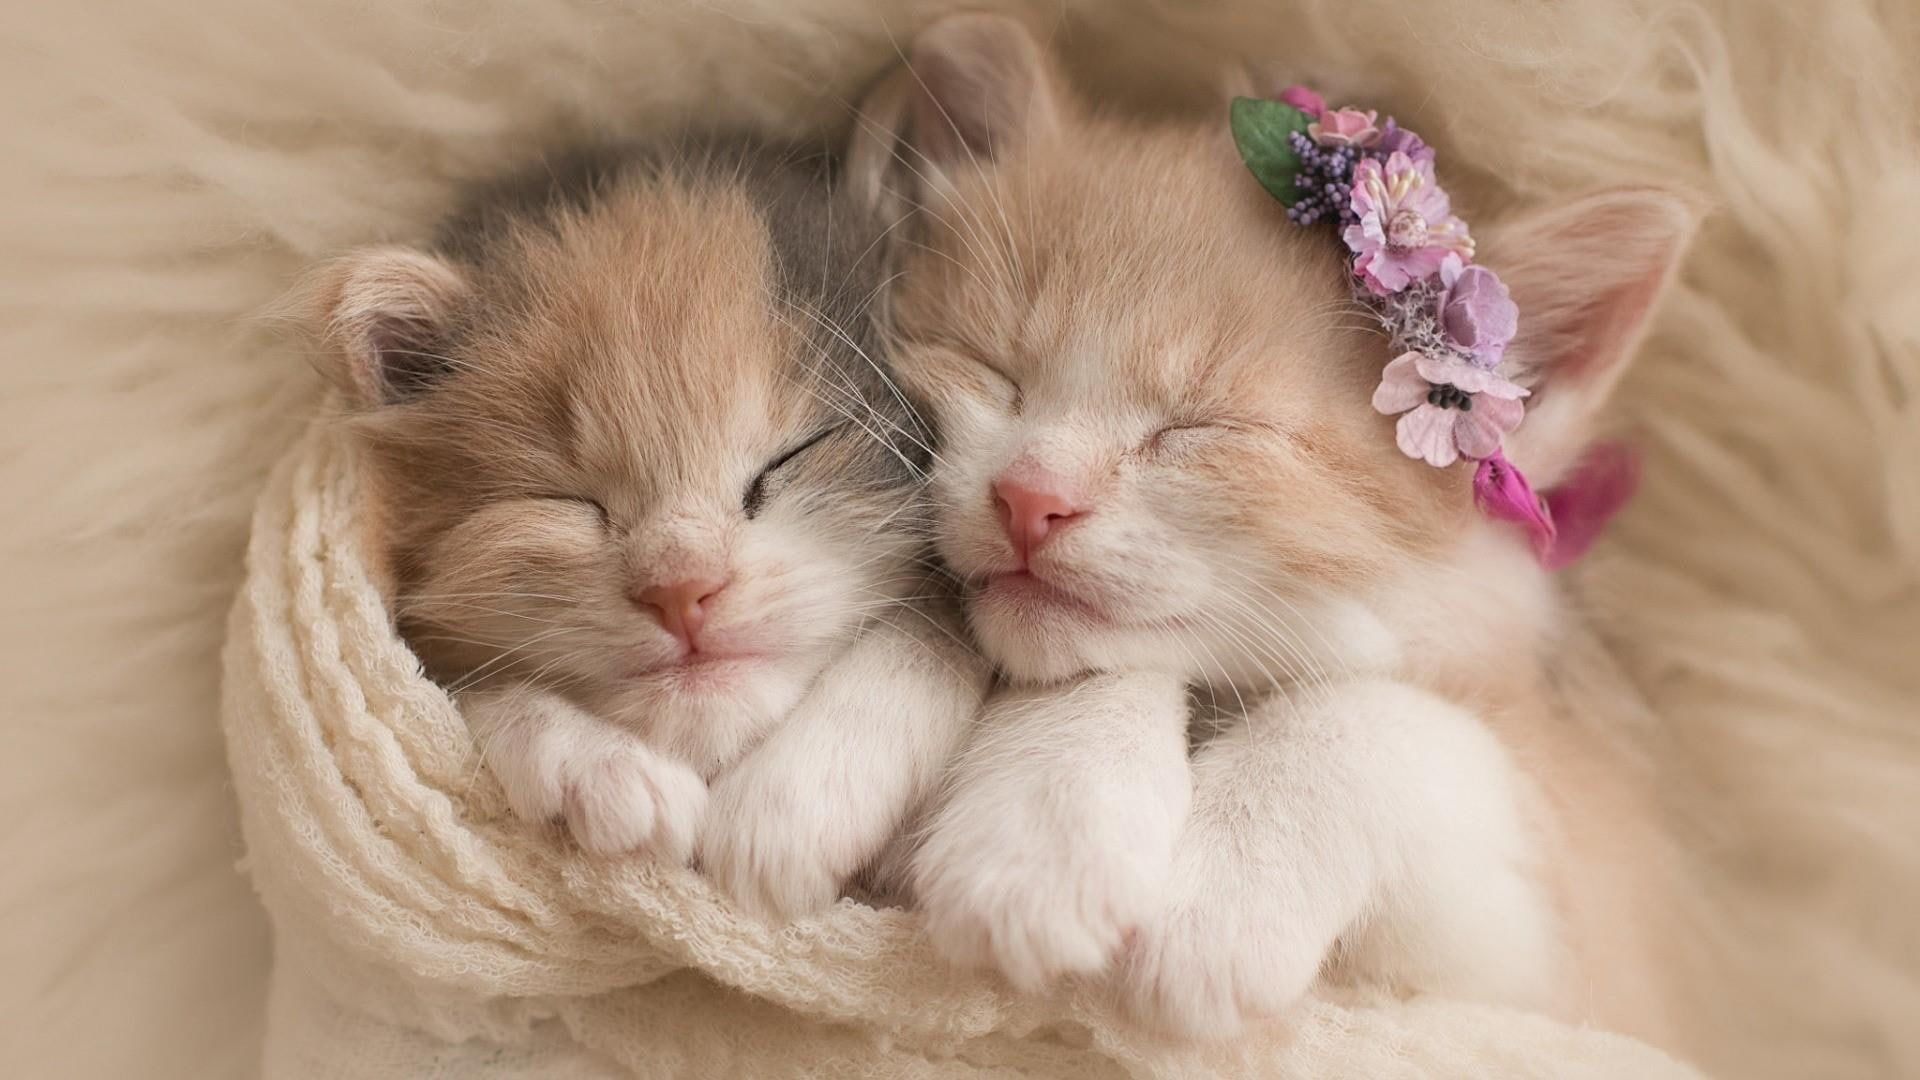 Two White And Orange Tabby Kittens Kitty Cat Cats Sleep Sleeping Cute Funny 1080p Wallpaper Hdwallpaper Kittens Cutest Cute Little Kittens Cute Cats